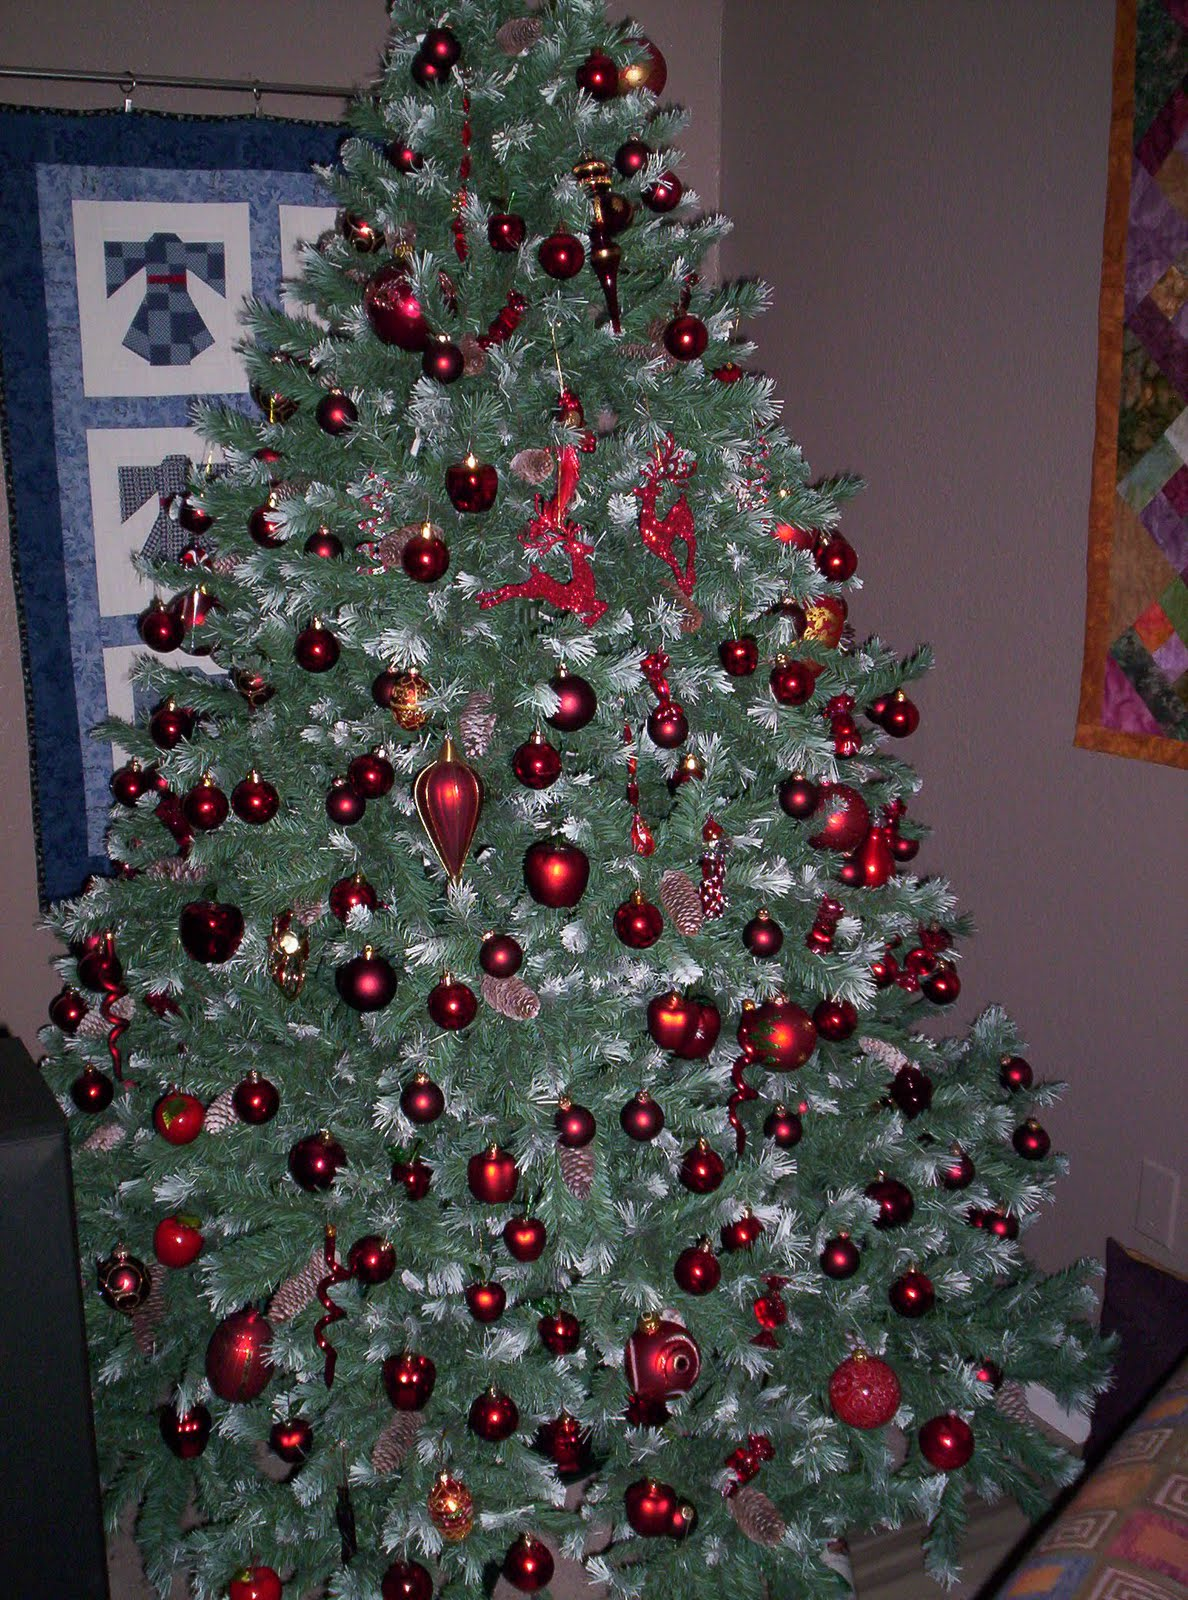 and im still sewing on little buttons and beads and bells on the cmas quilt whoda thought it would take me as much time as it has just for those little - Christmas Tree With White Lights And Red Decorations